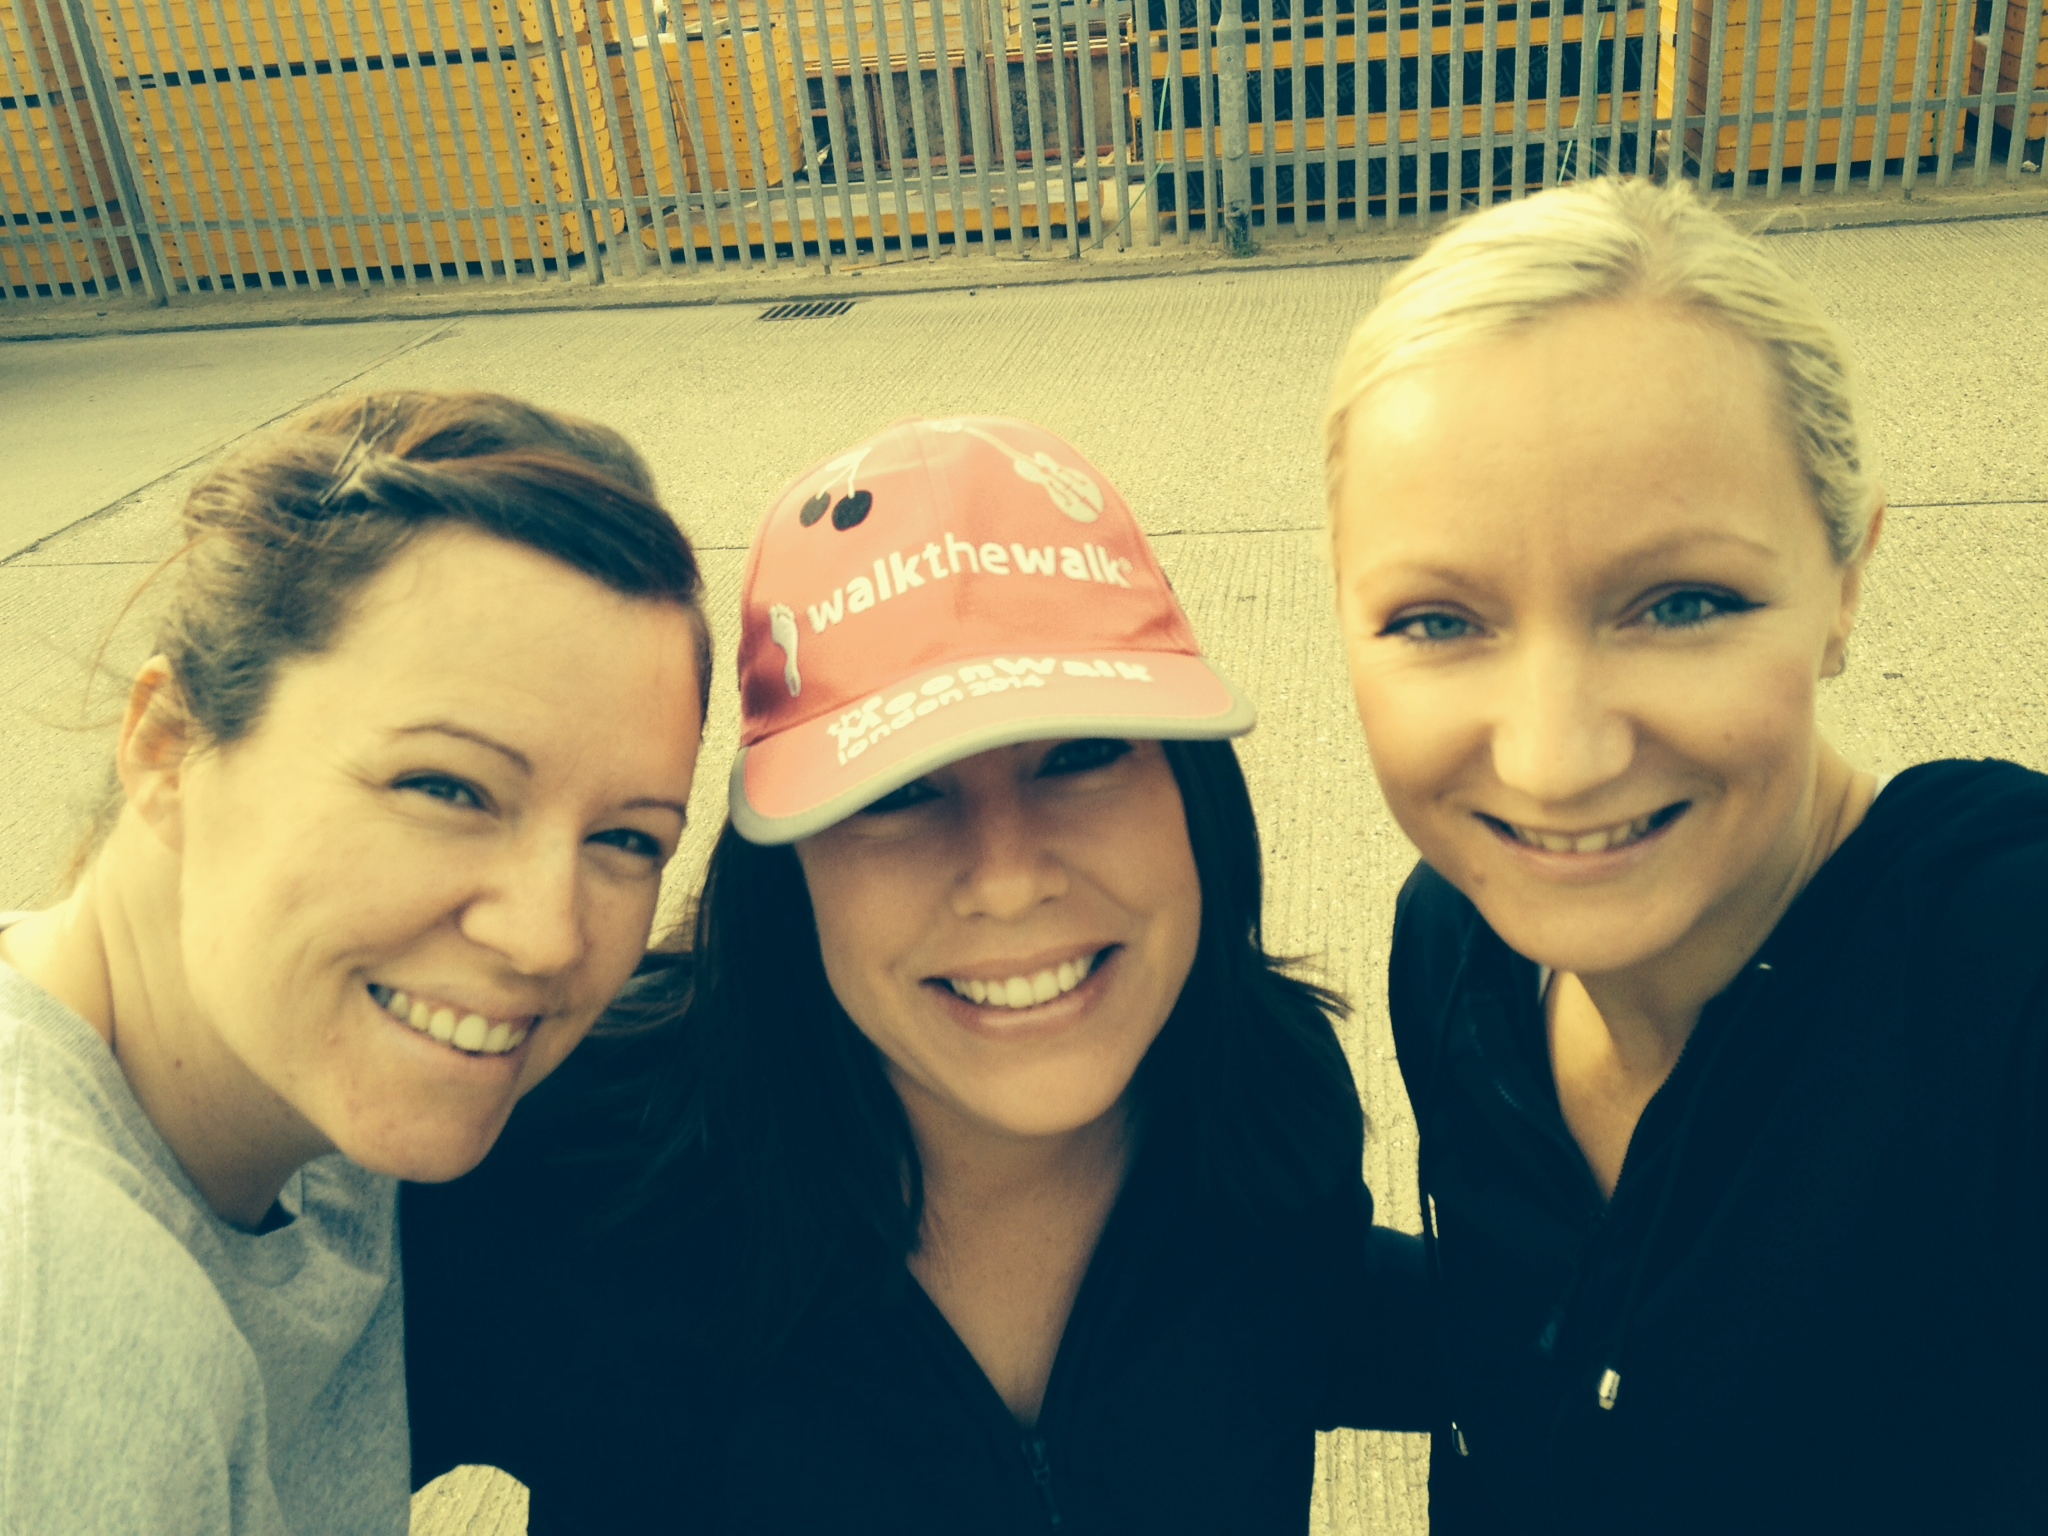 Windsor Waste Management ladies walk for charity